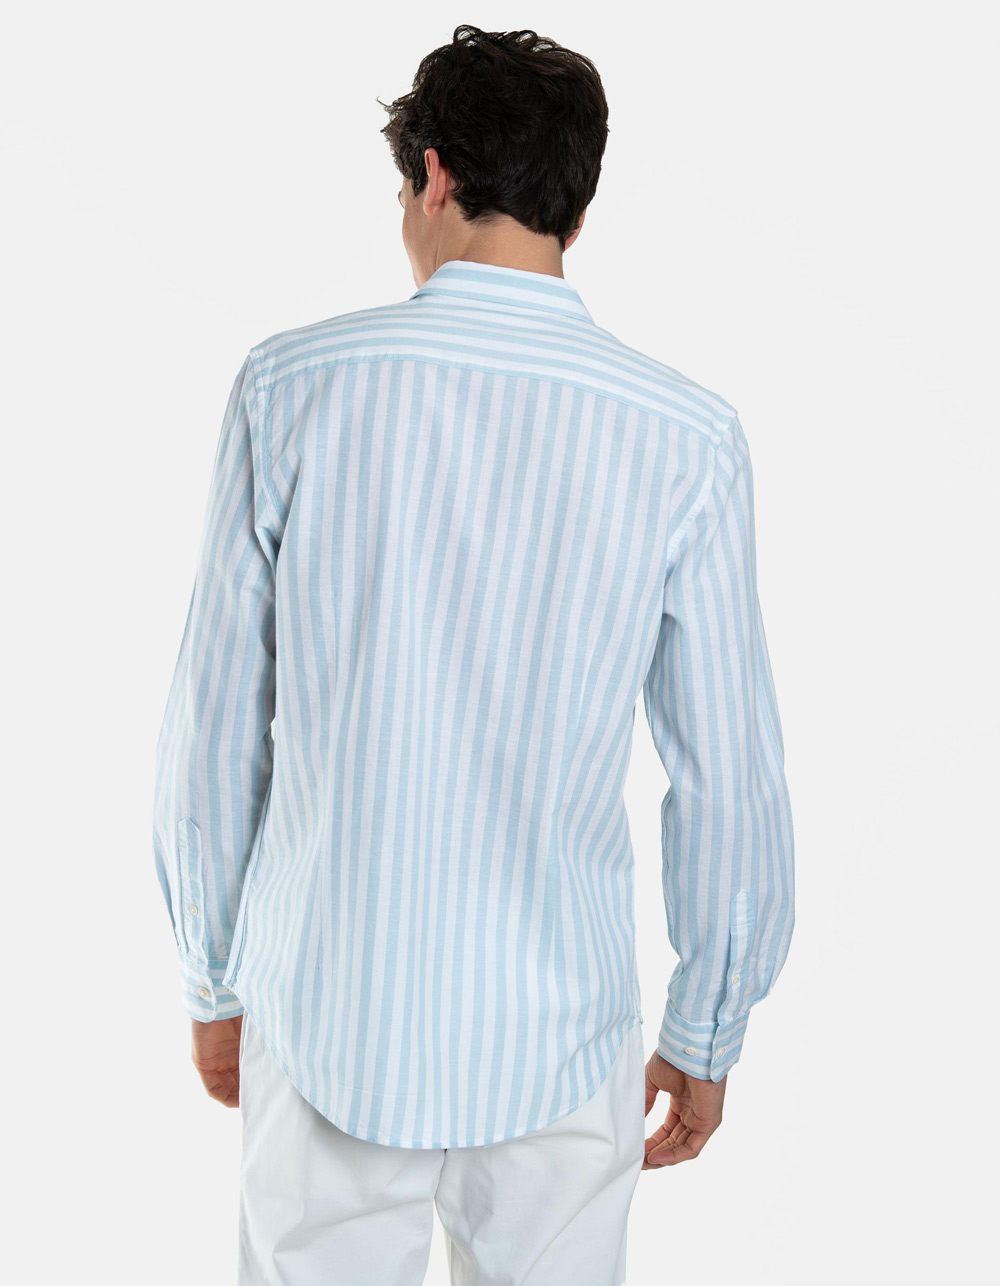 Striped shirt long sleeve - Backside